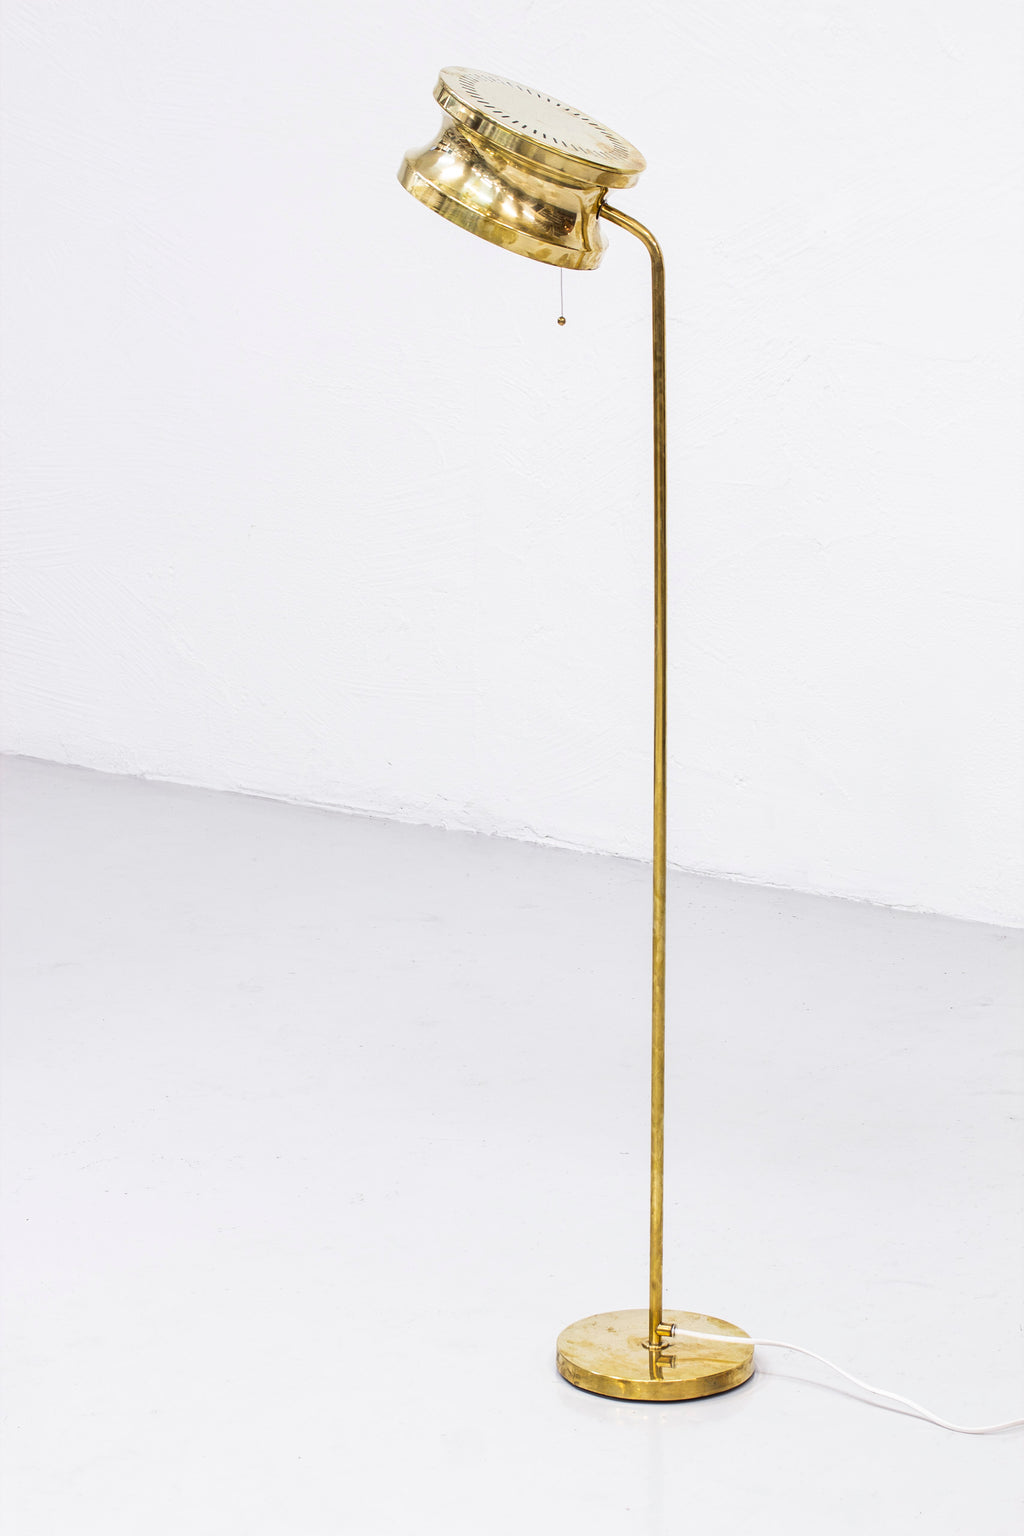 Floor lamp by Tyringe kontshantverk